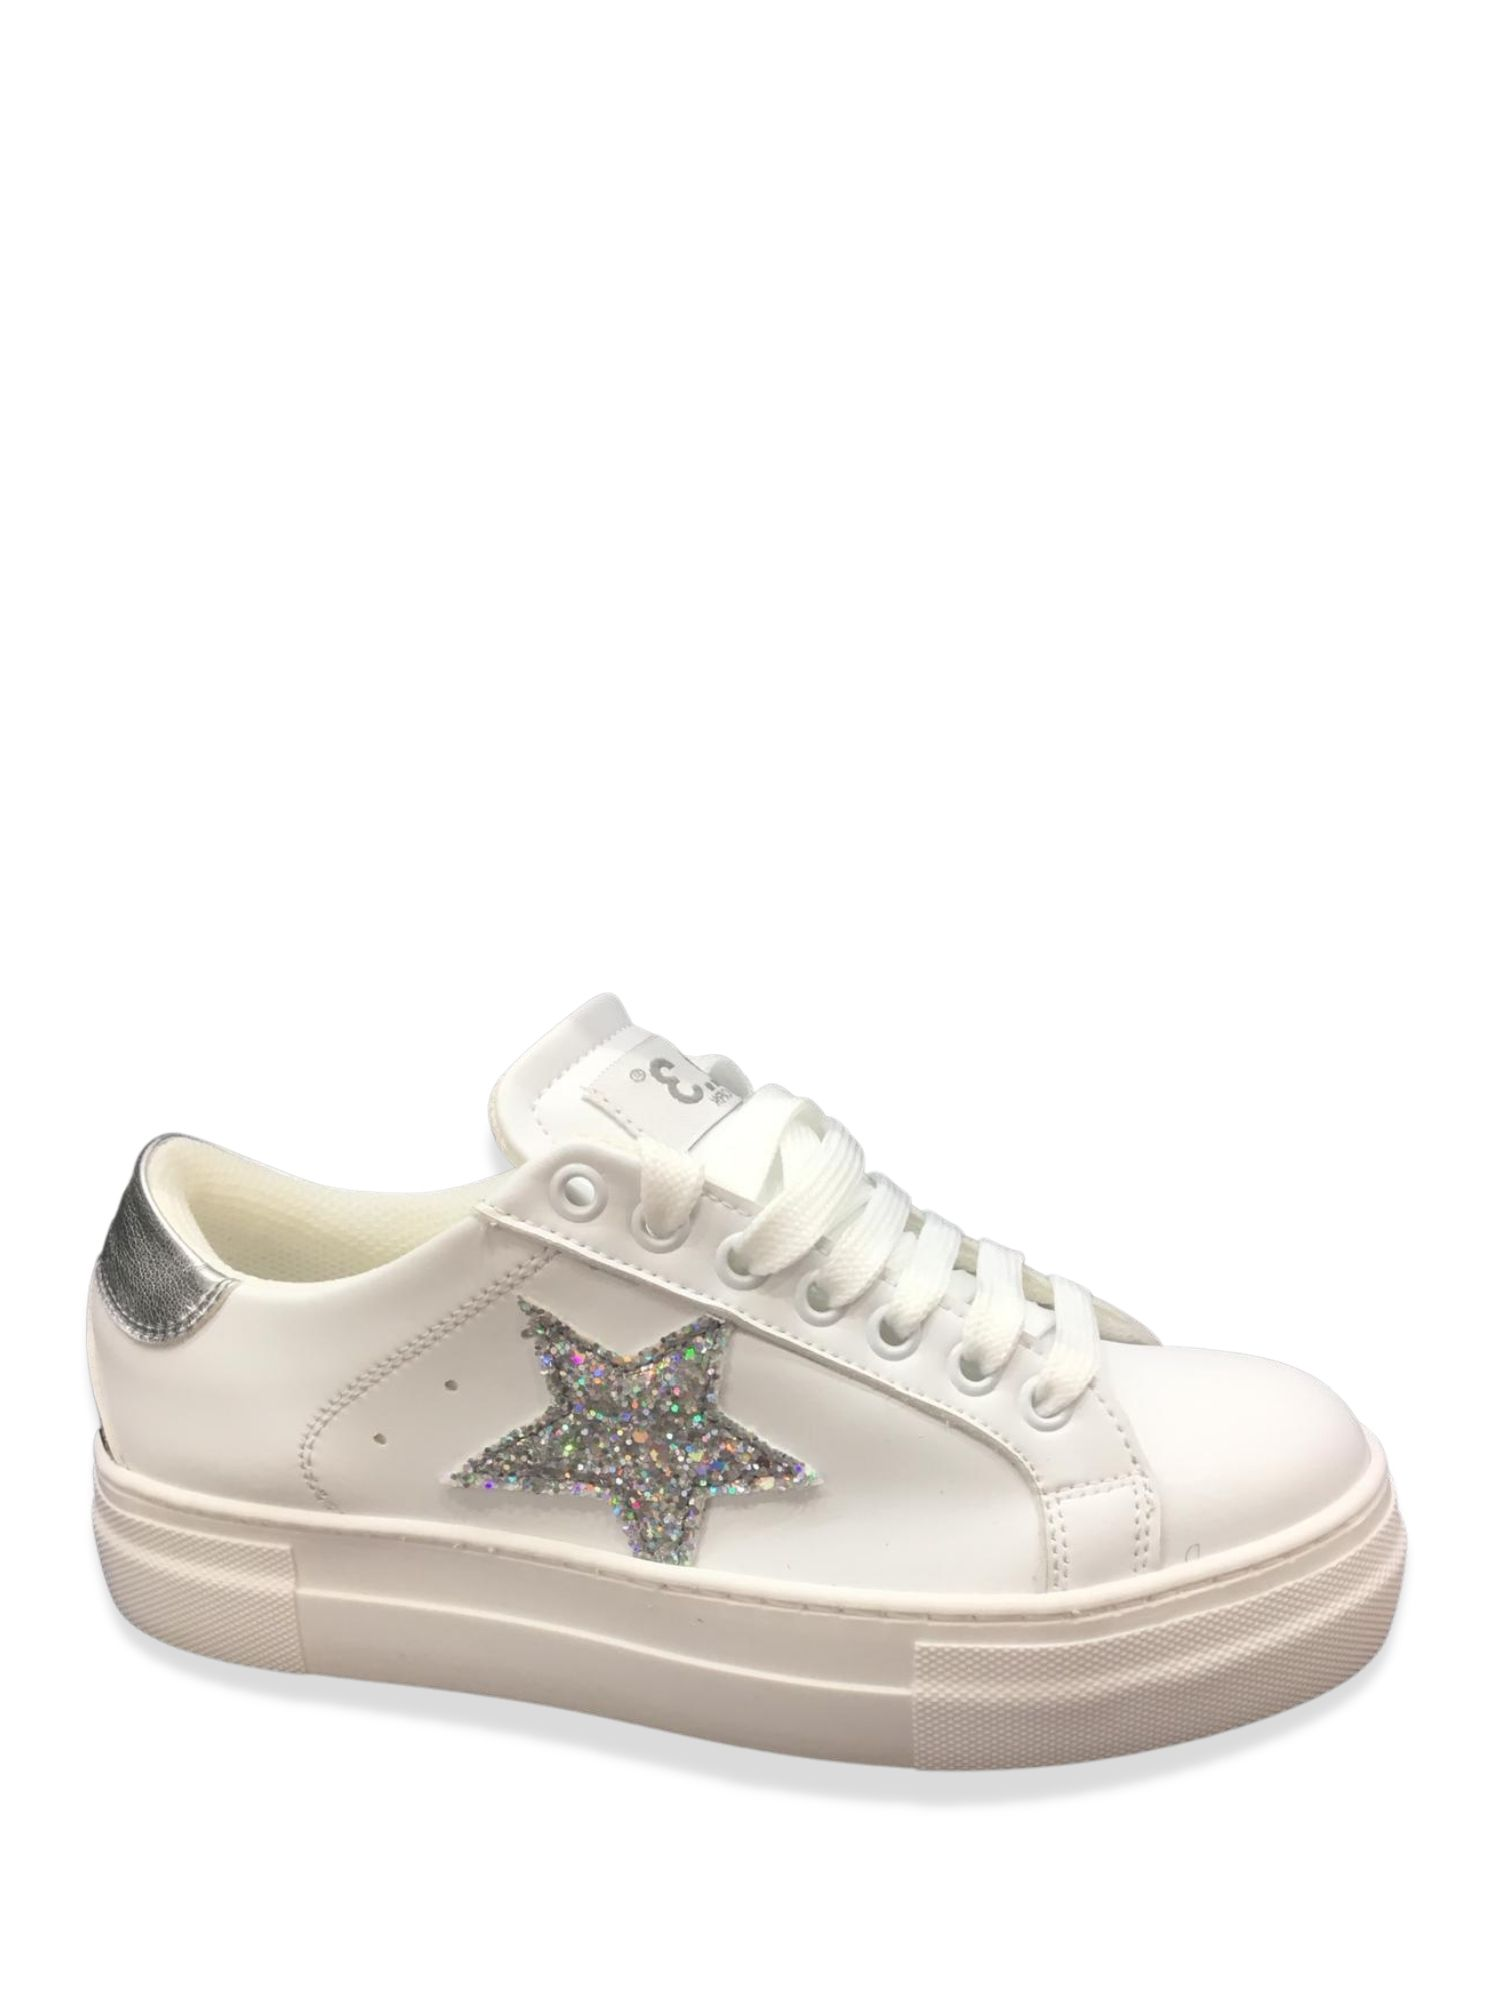 Sneakers Made in Italy 501 Biancoargento